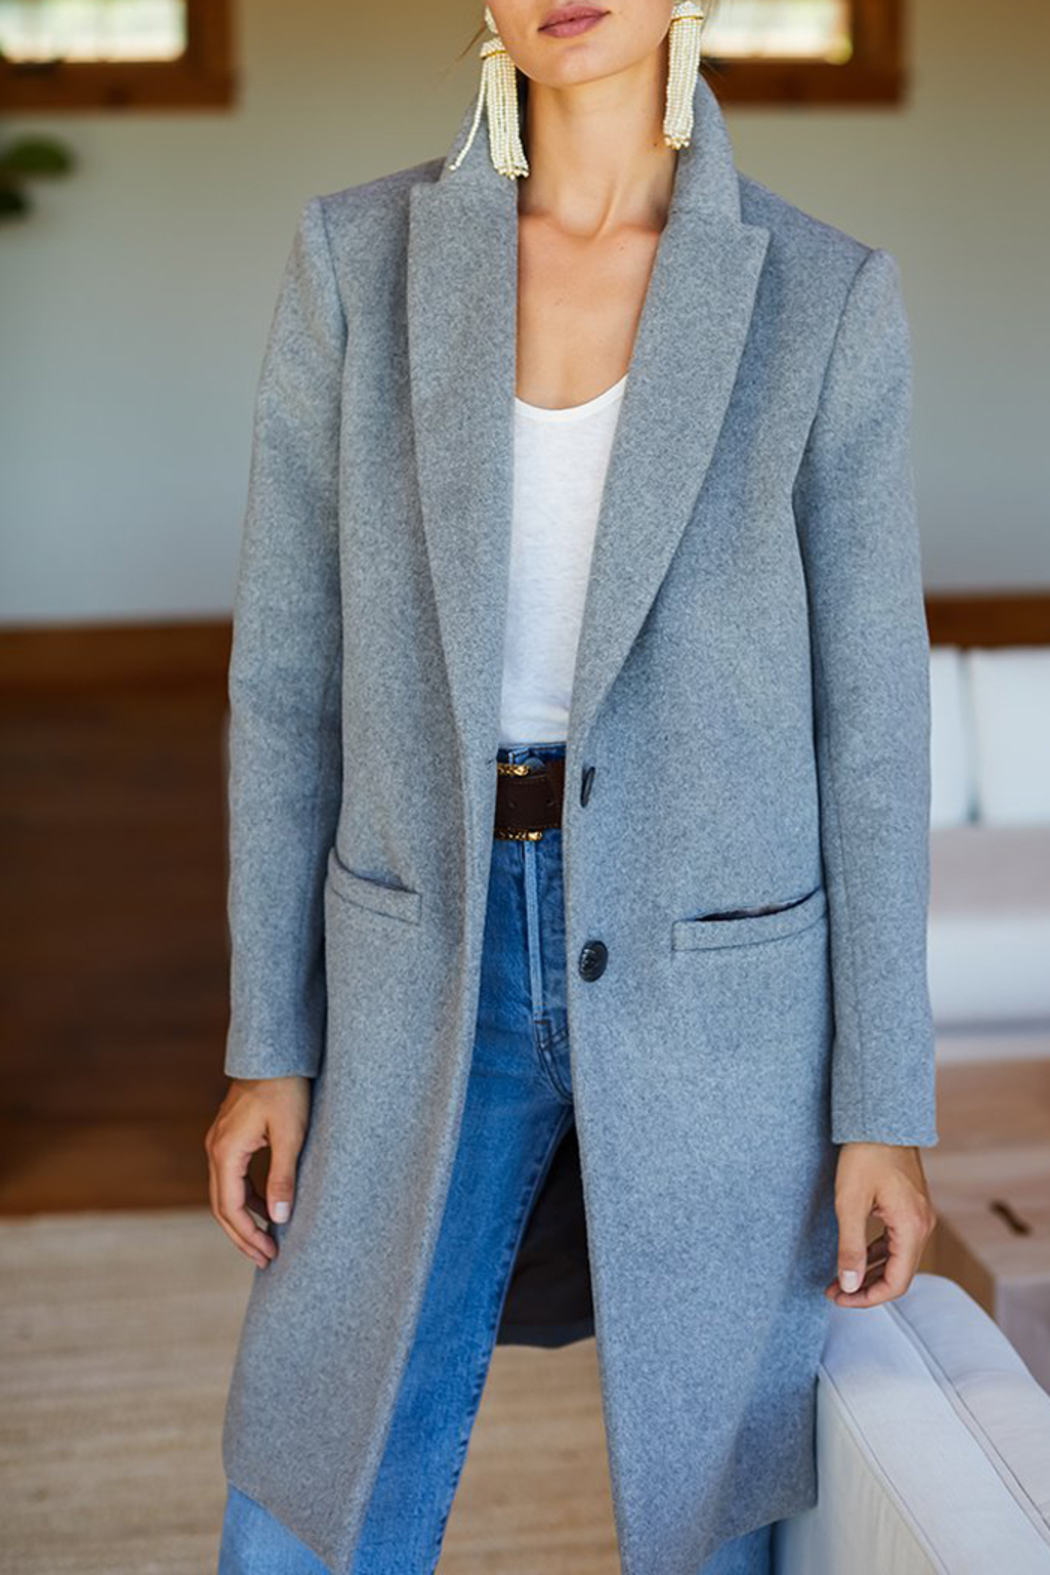 Emerson Fry Tailored Wool Coat - Main Image